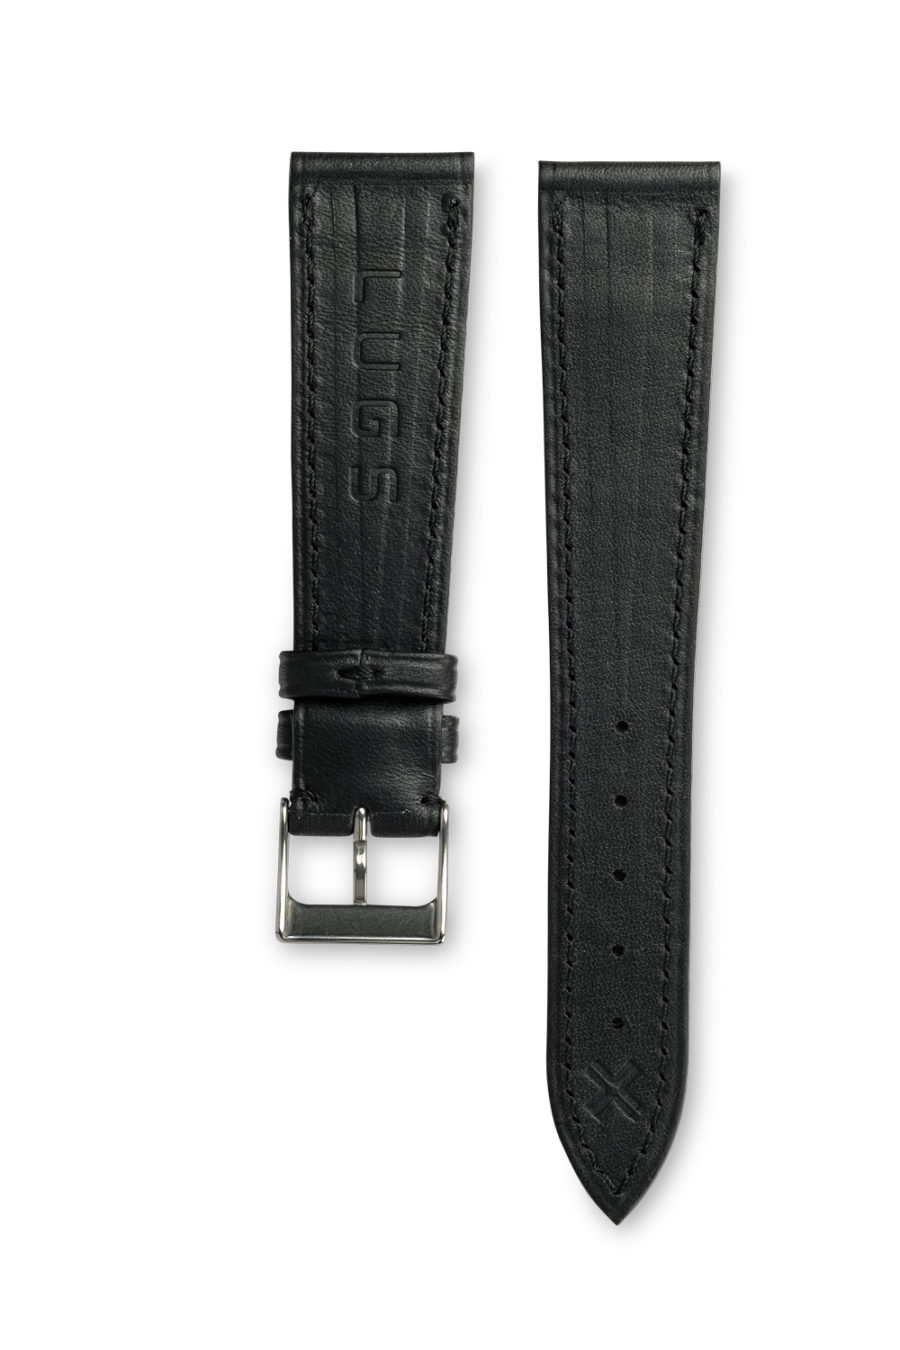 Smooth Classic Barenia deep black leather watch strap - tone on tone stitching - LUGS brand